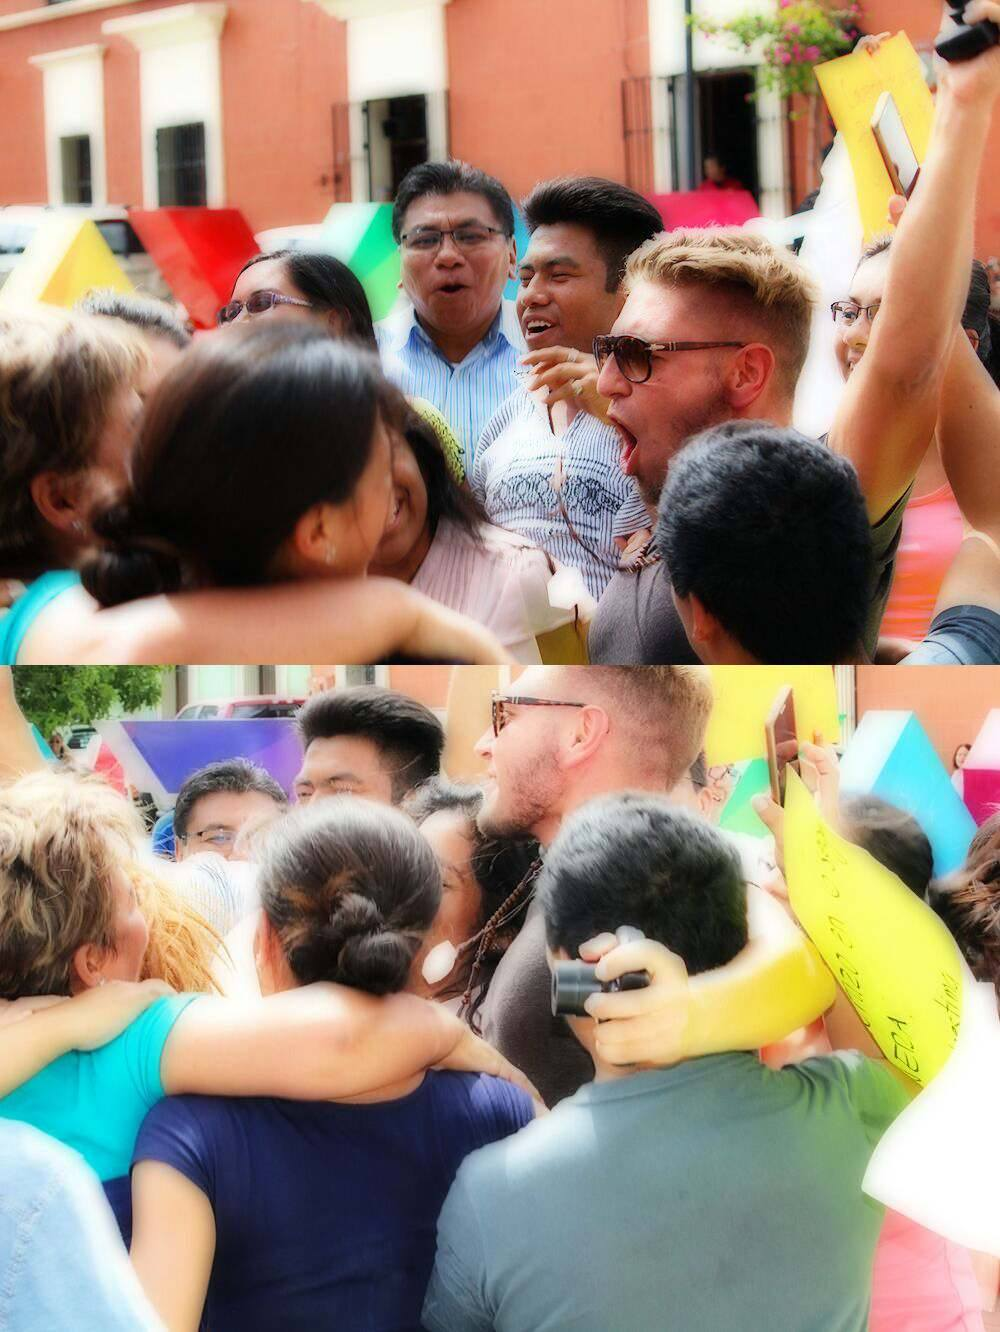 2017 A moment of spontaneous oneness in the lead-up to the Earth Oneness Ceremony in Oaxaca Mexico. A massive group hug on the streets of this colourful city.